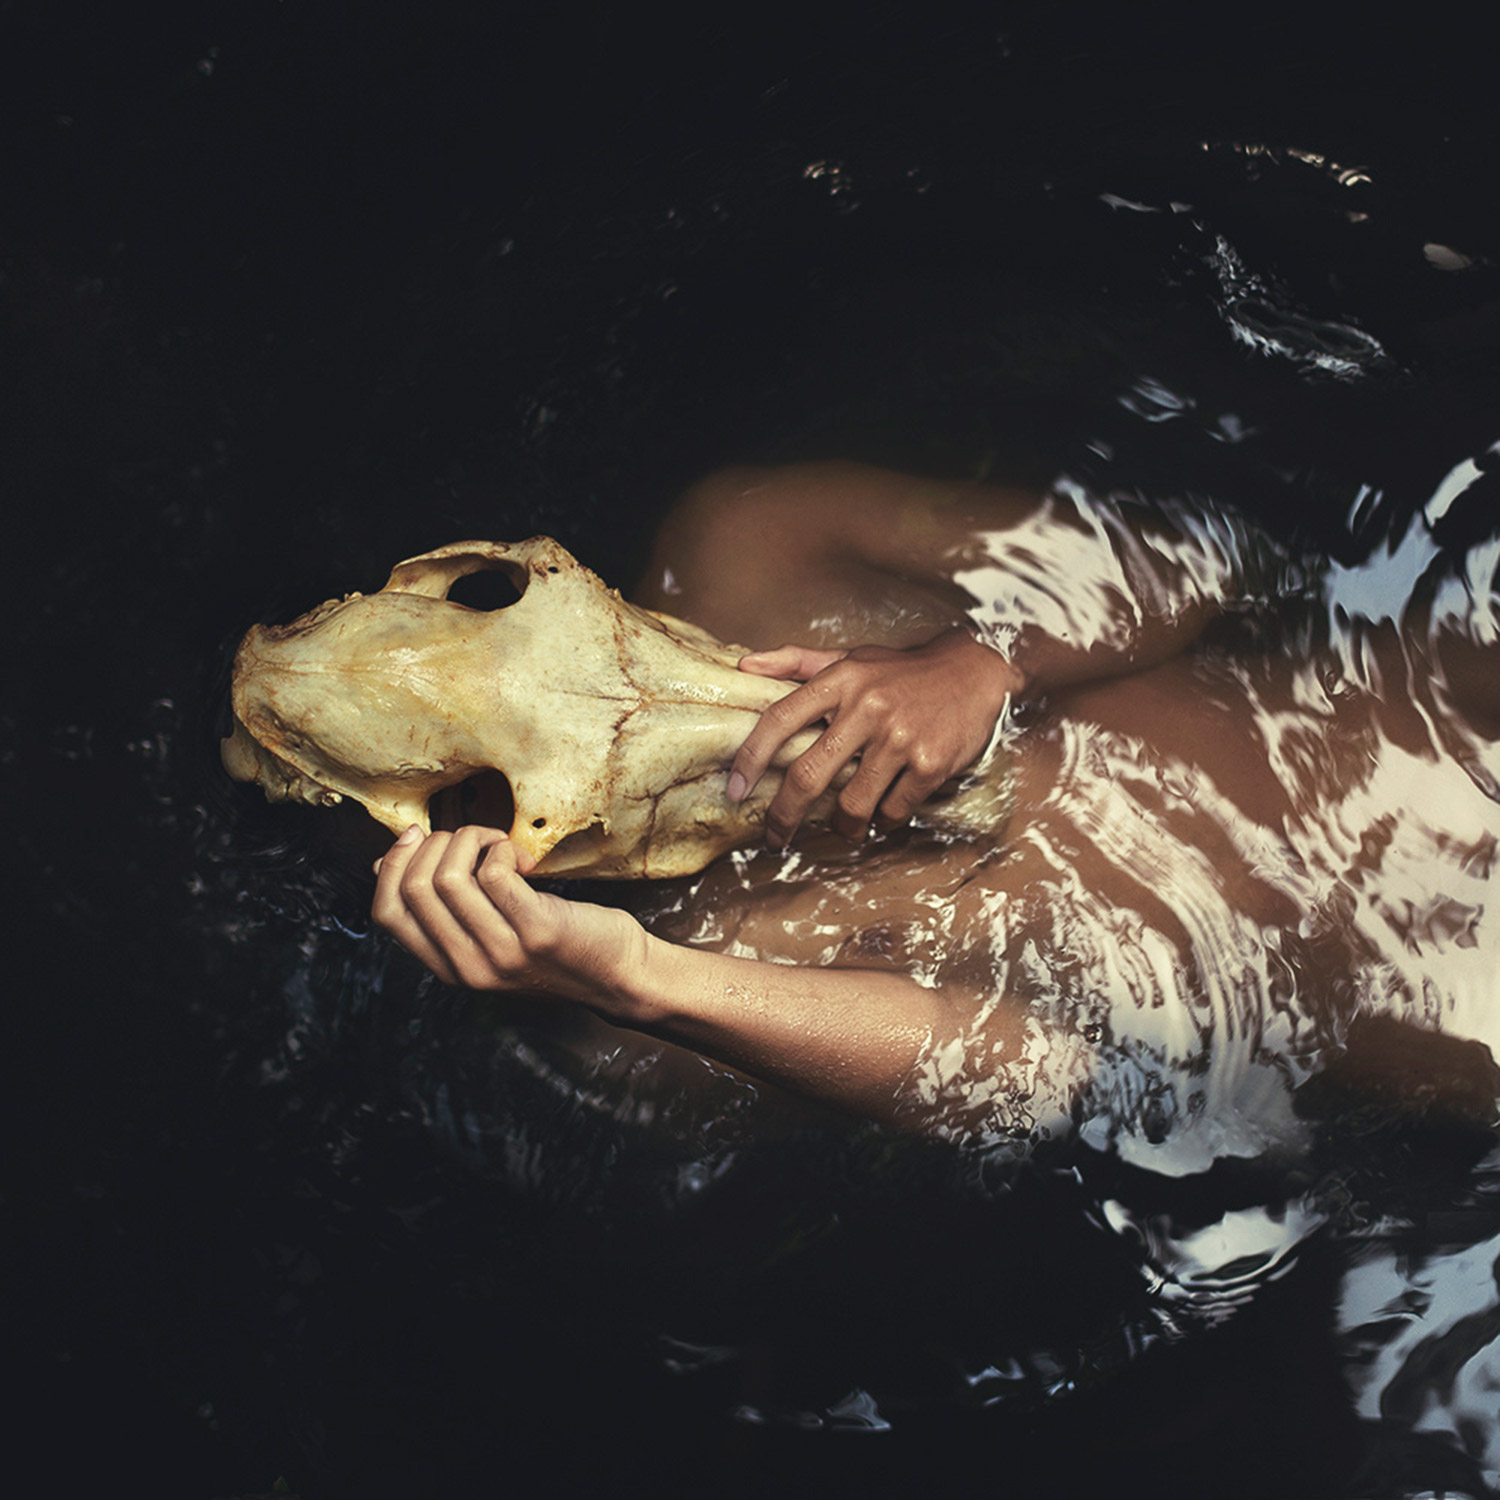 Mikael Aldo, skull-faced boy under water